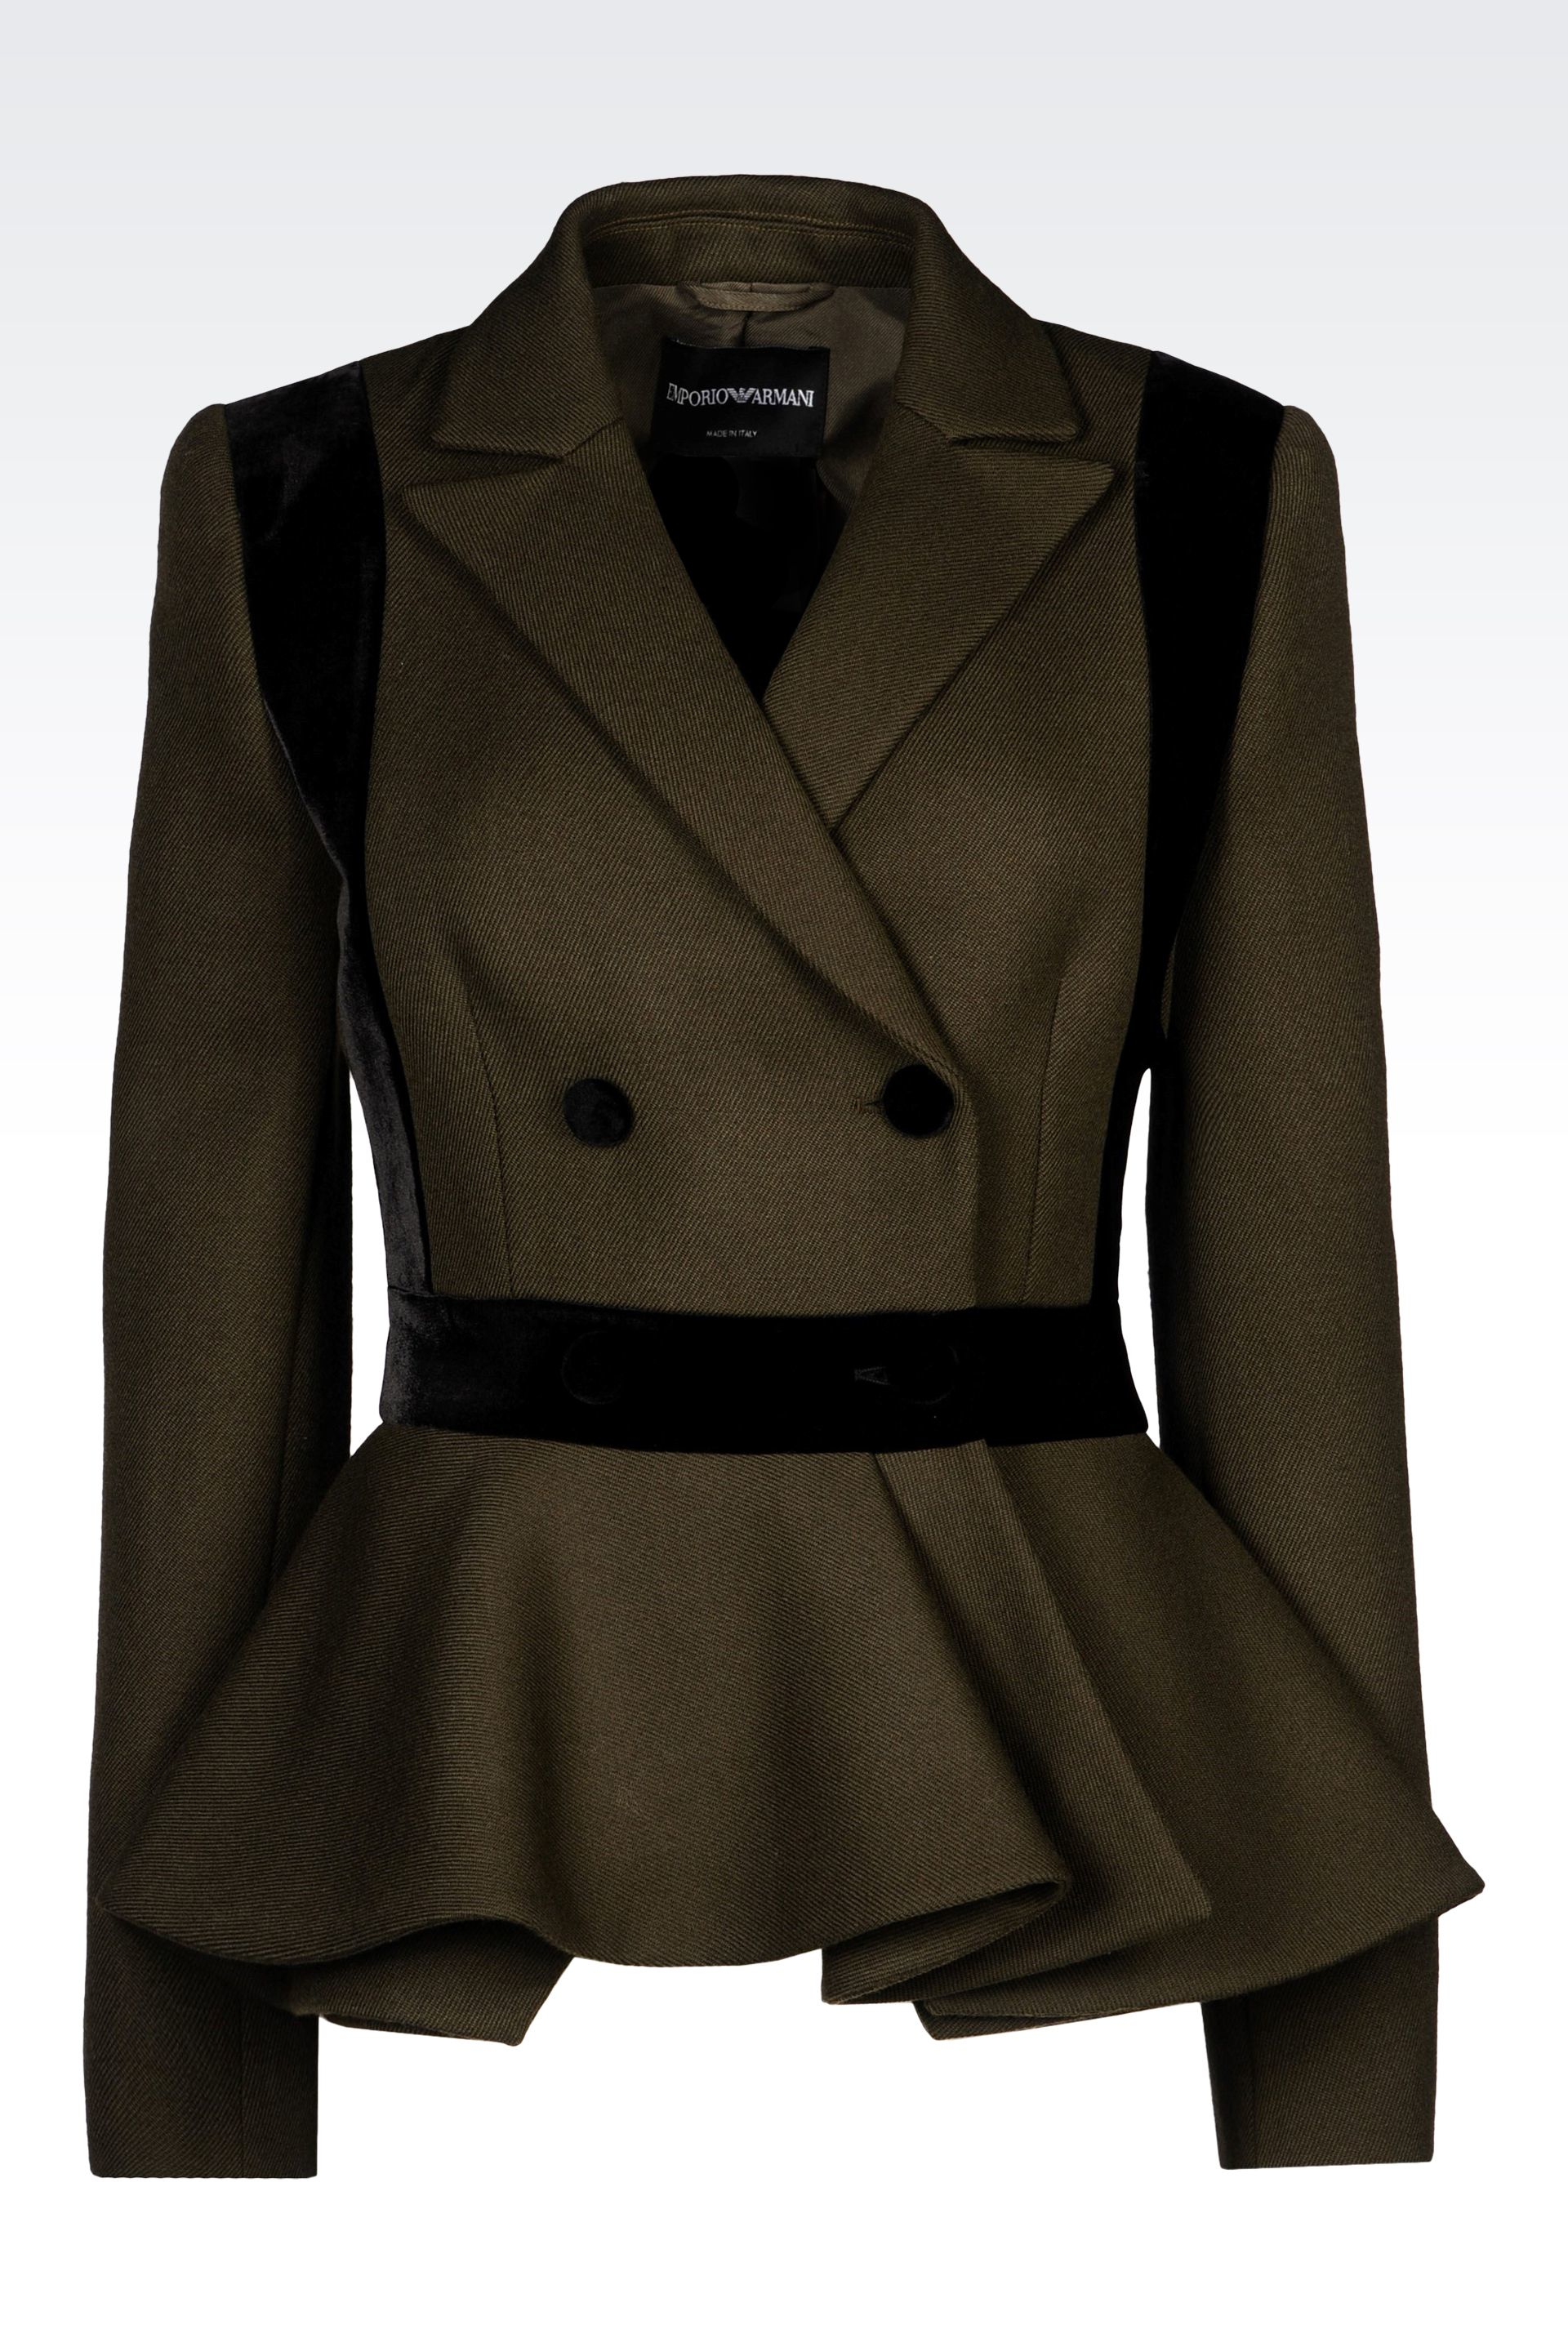 Emporio Armani Double Breasted Jacket In Wool Twill In